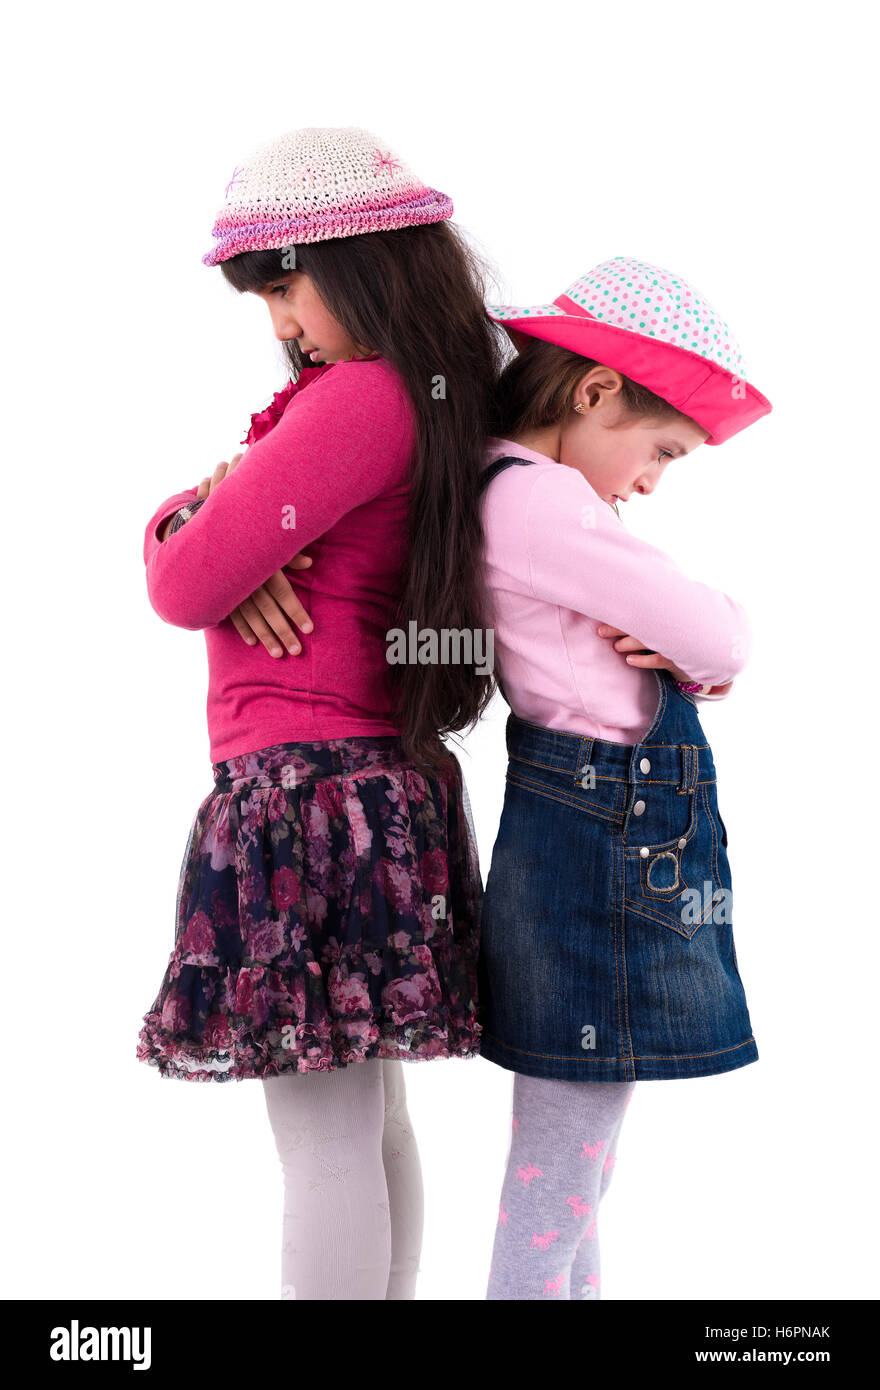 Two Sad Little Girls in Quarrel Isolated on White Background - Stock Image